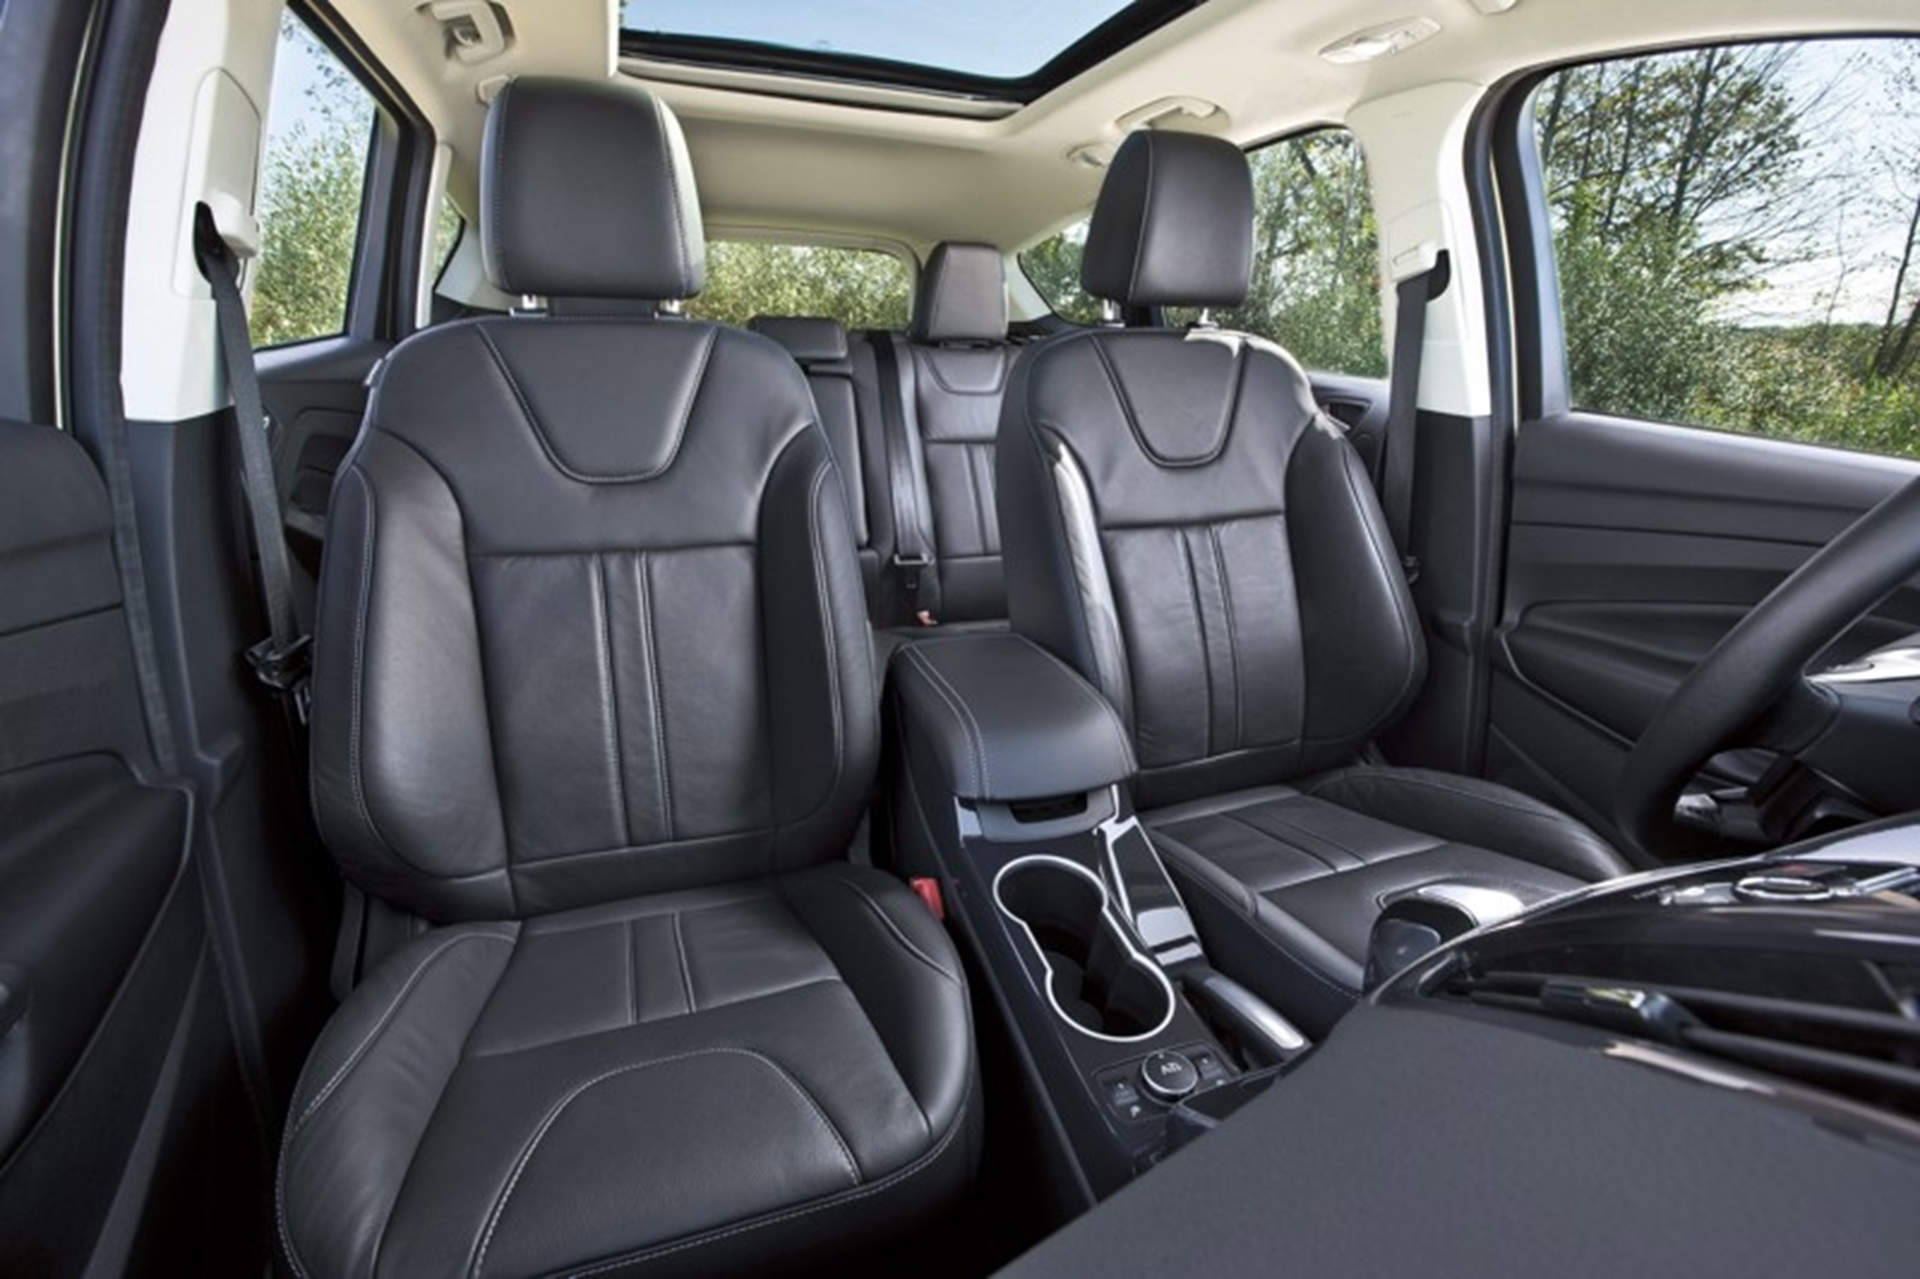 Ford Escape 2012 Inside